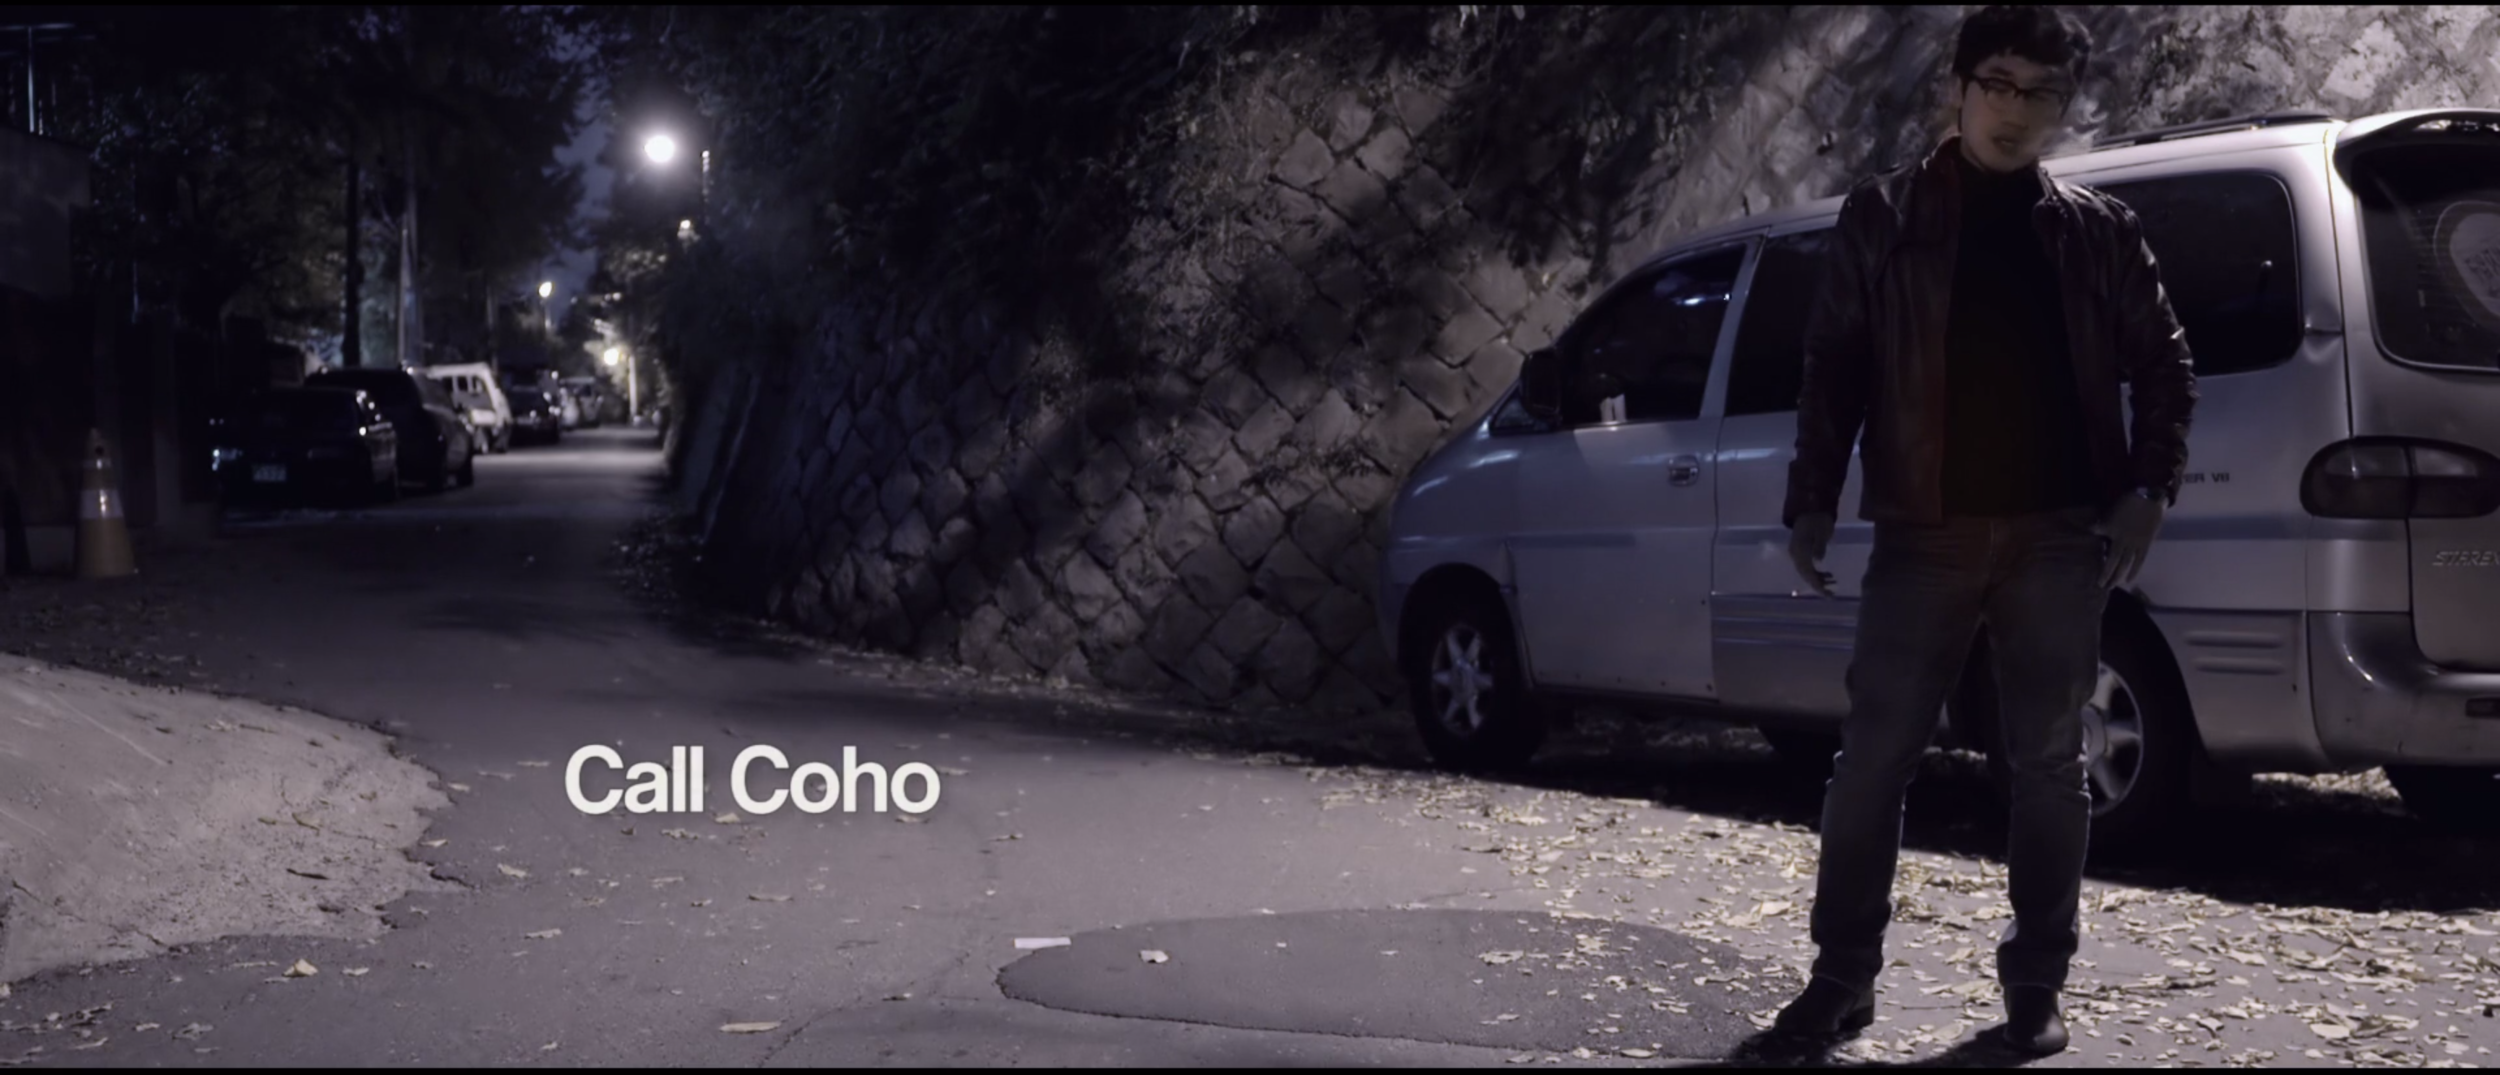 Call Coho, the proxy driver you need, not the one you want.